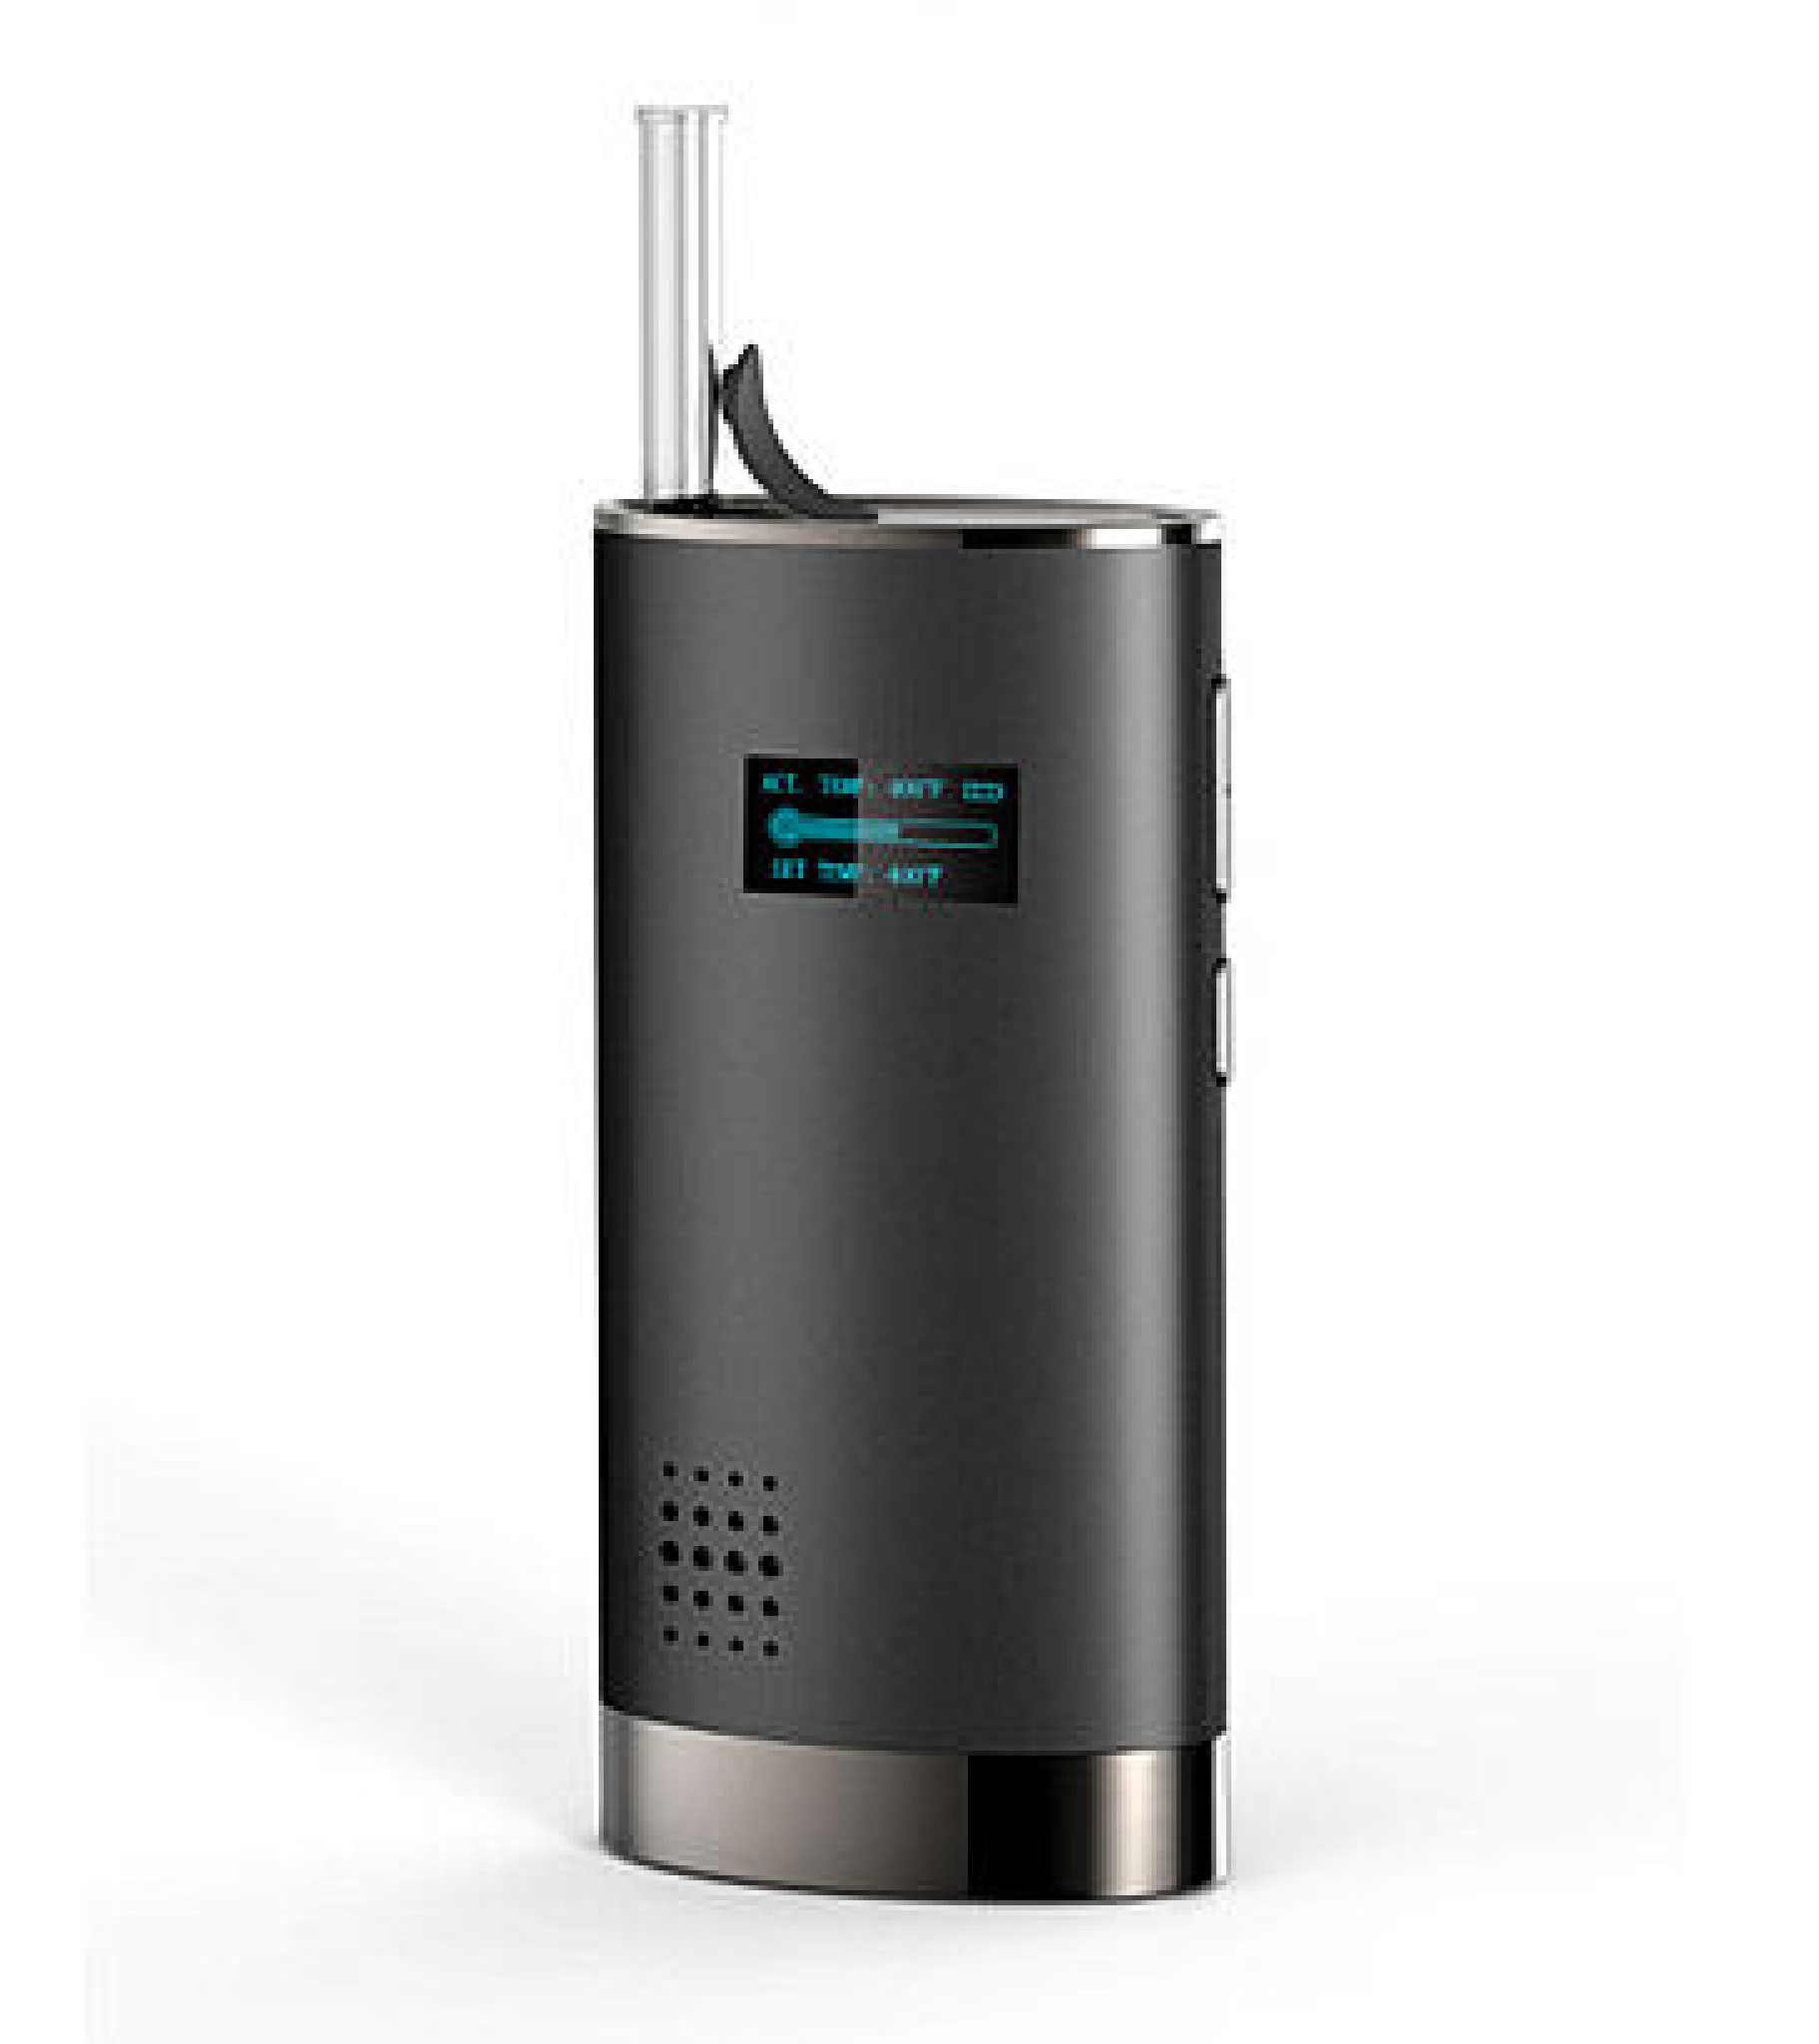 VAPORMAX V8 PORTABLE VAPORIZER by CHEATING THE HANGMAN